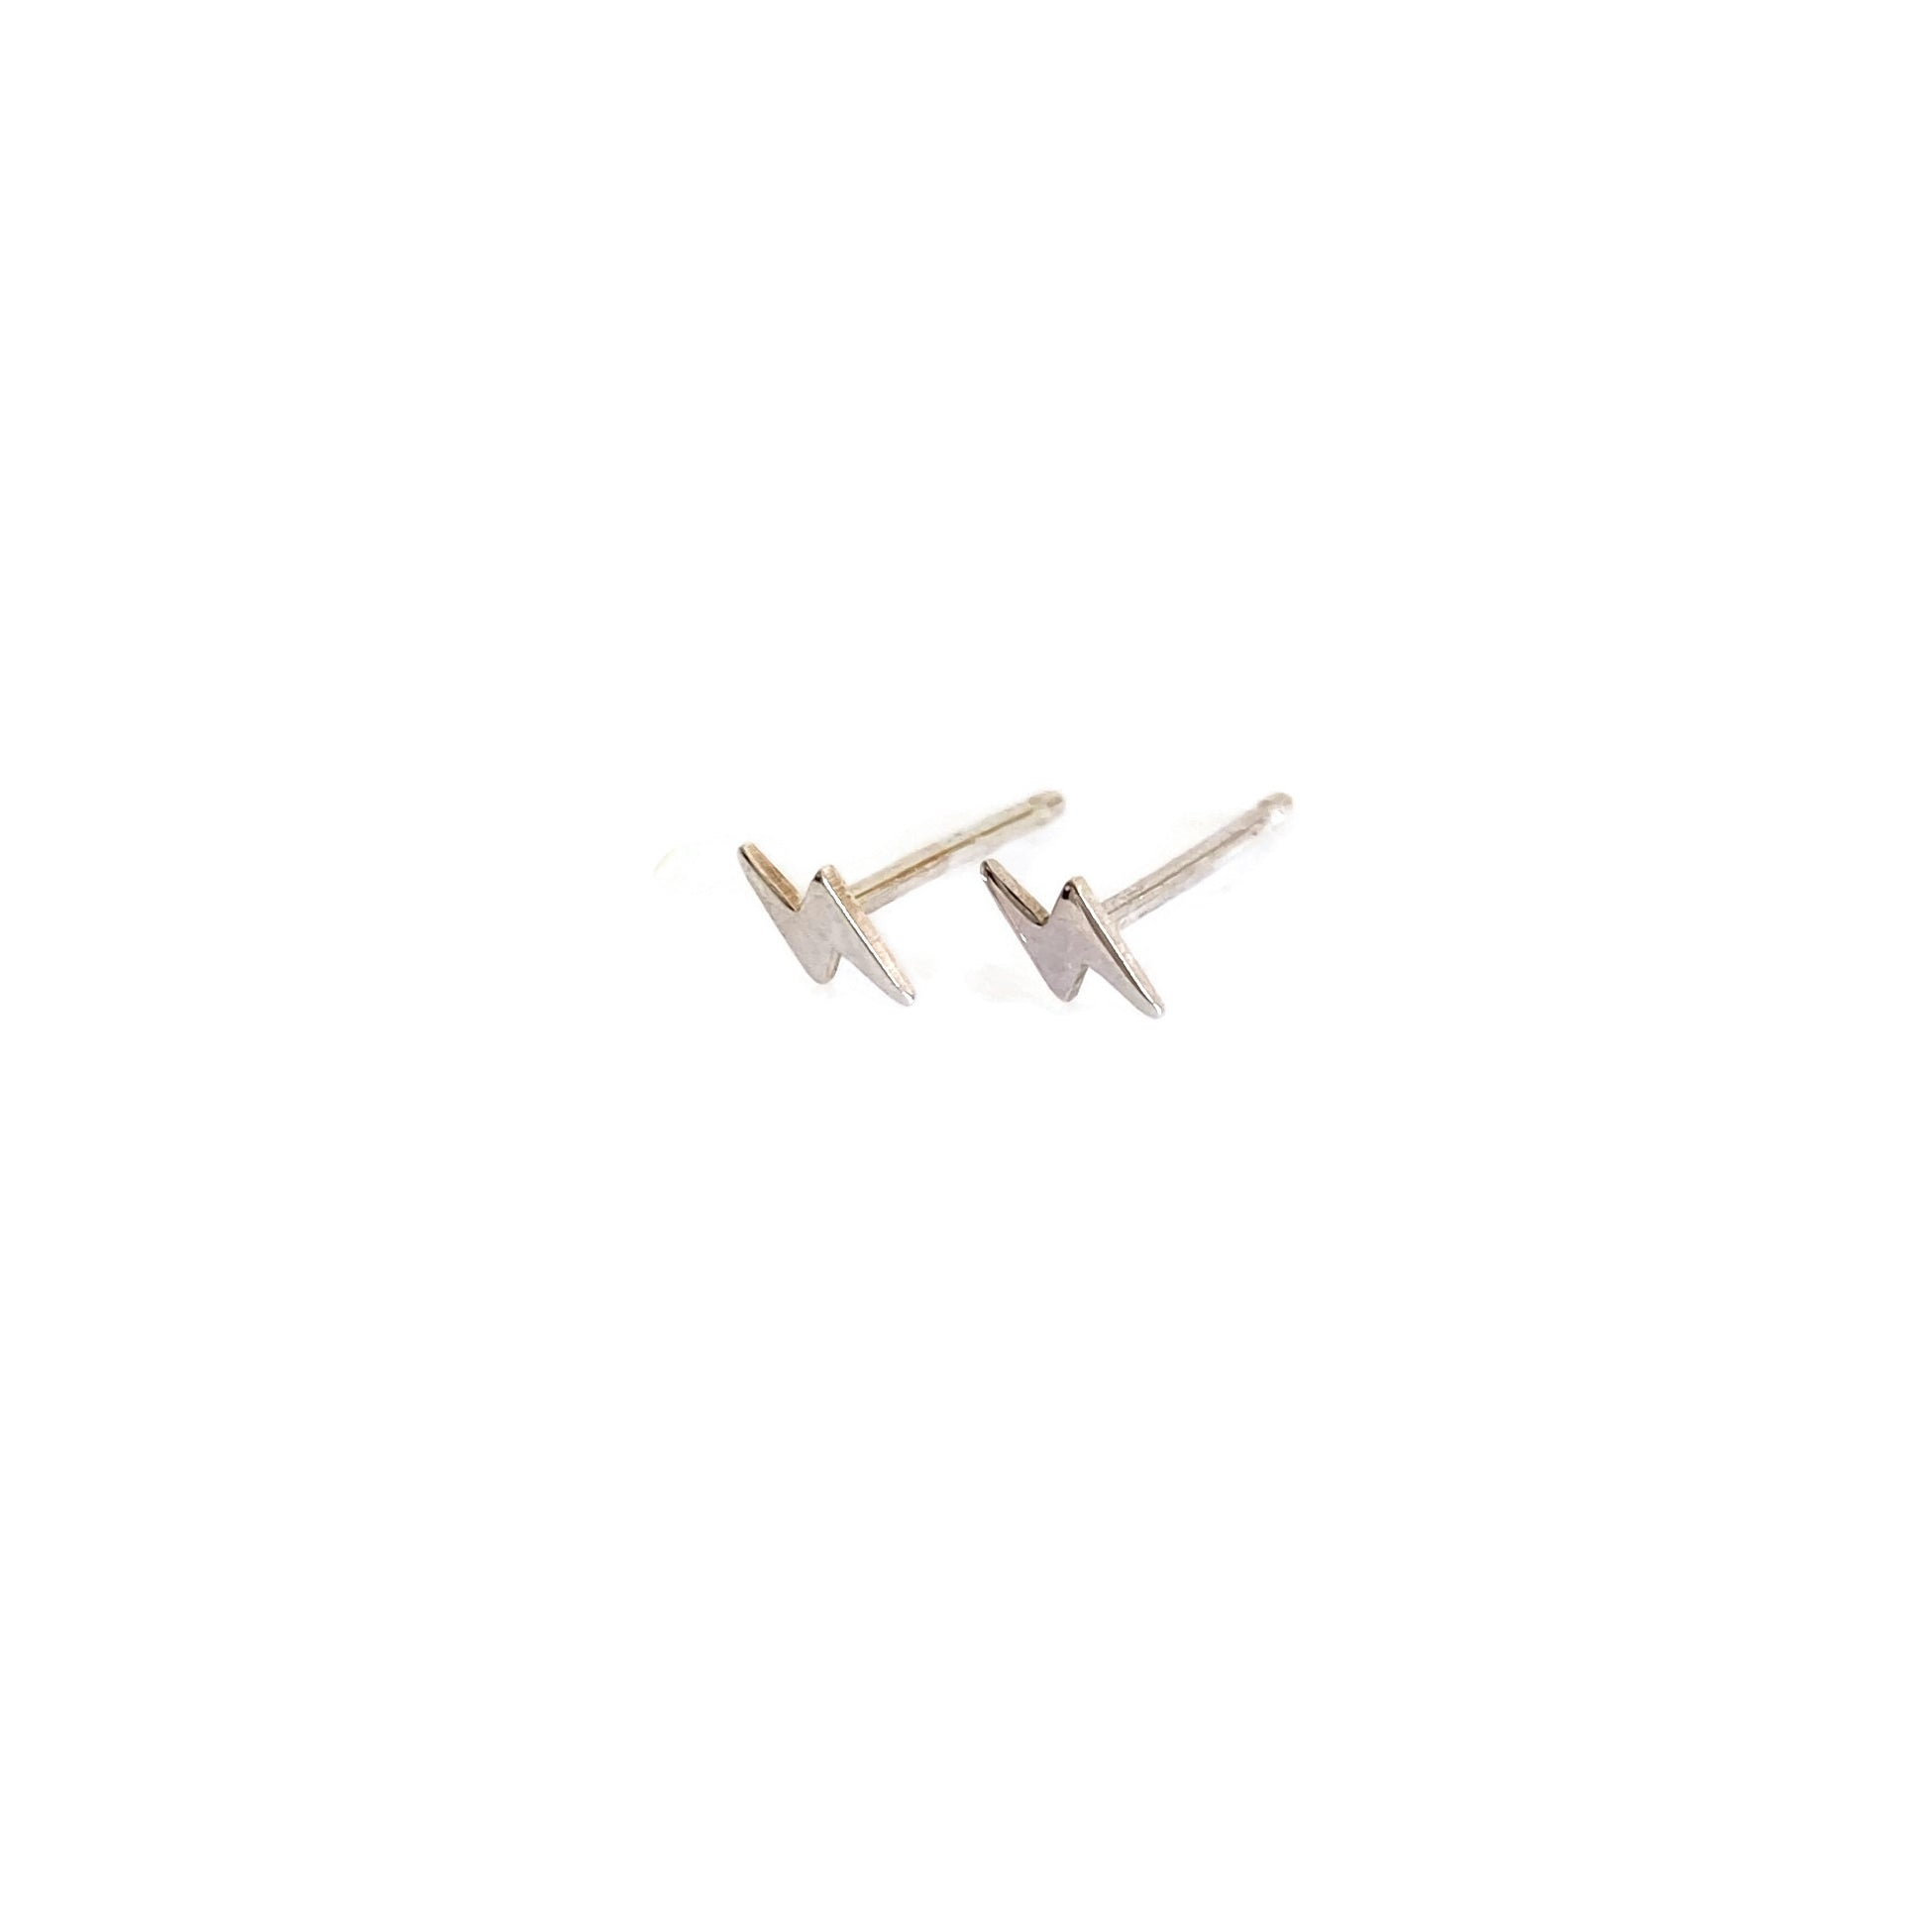 sterling silver tiny lightening bolt stud earrings are small and great for cartilage piercing.